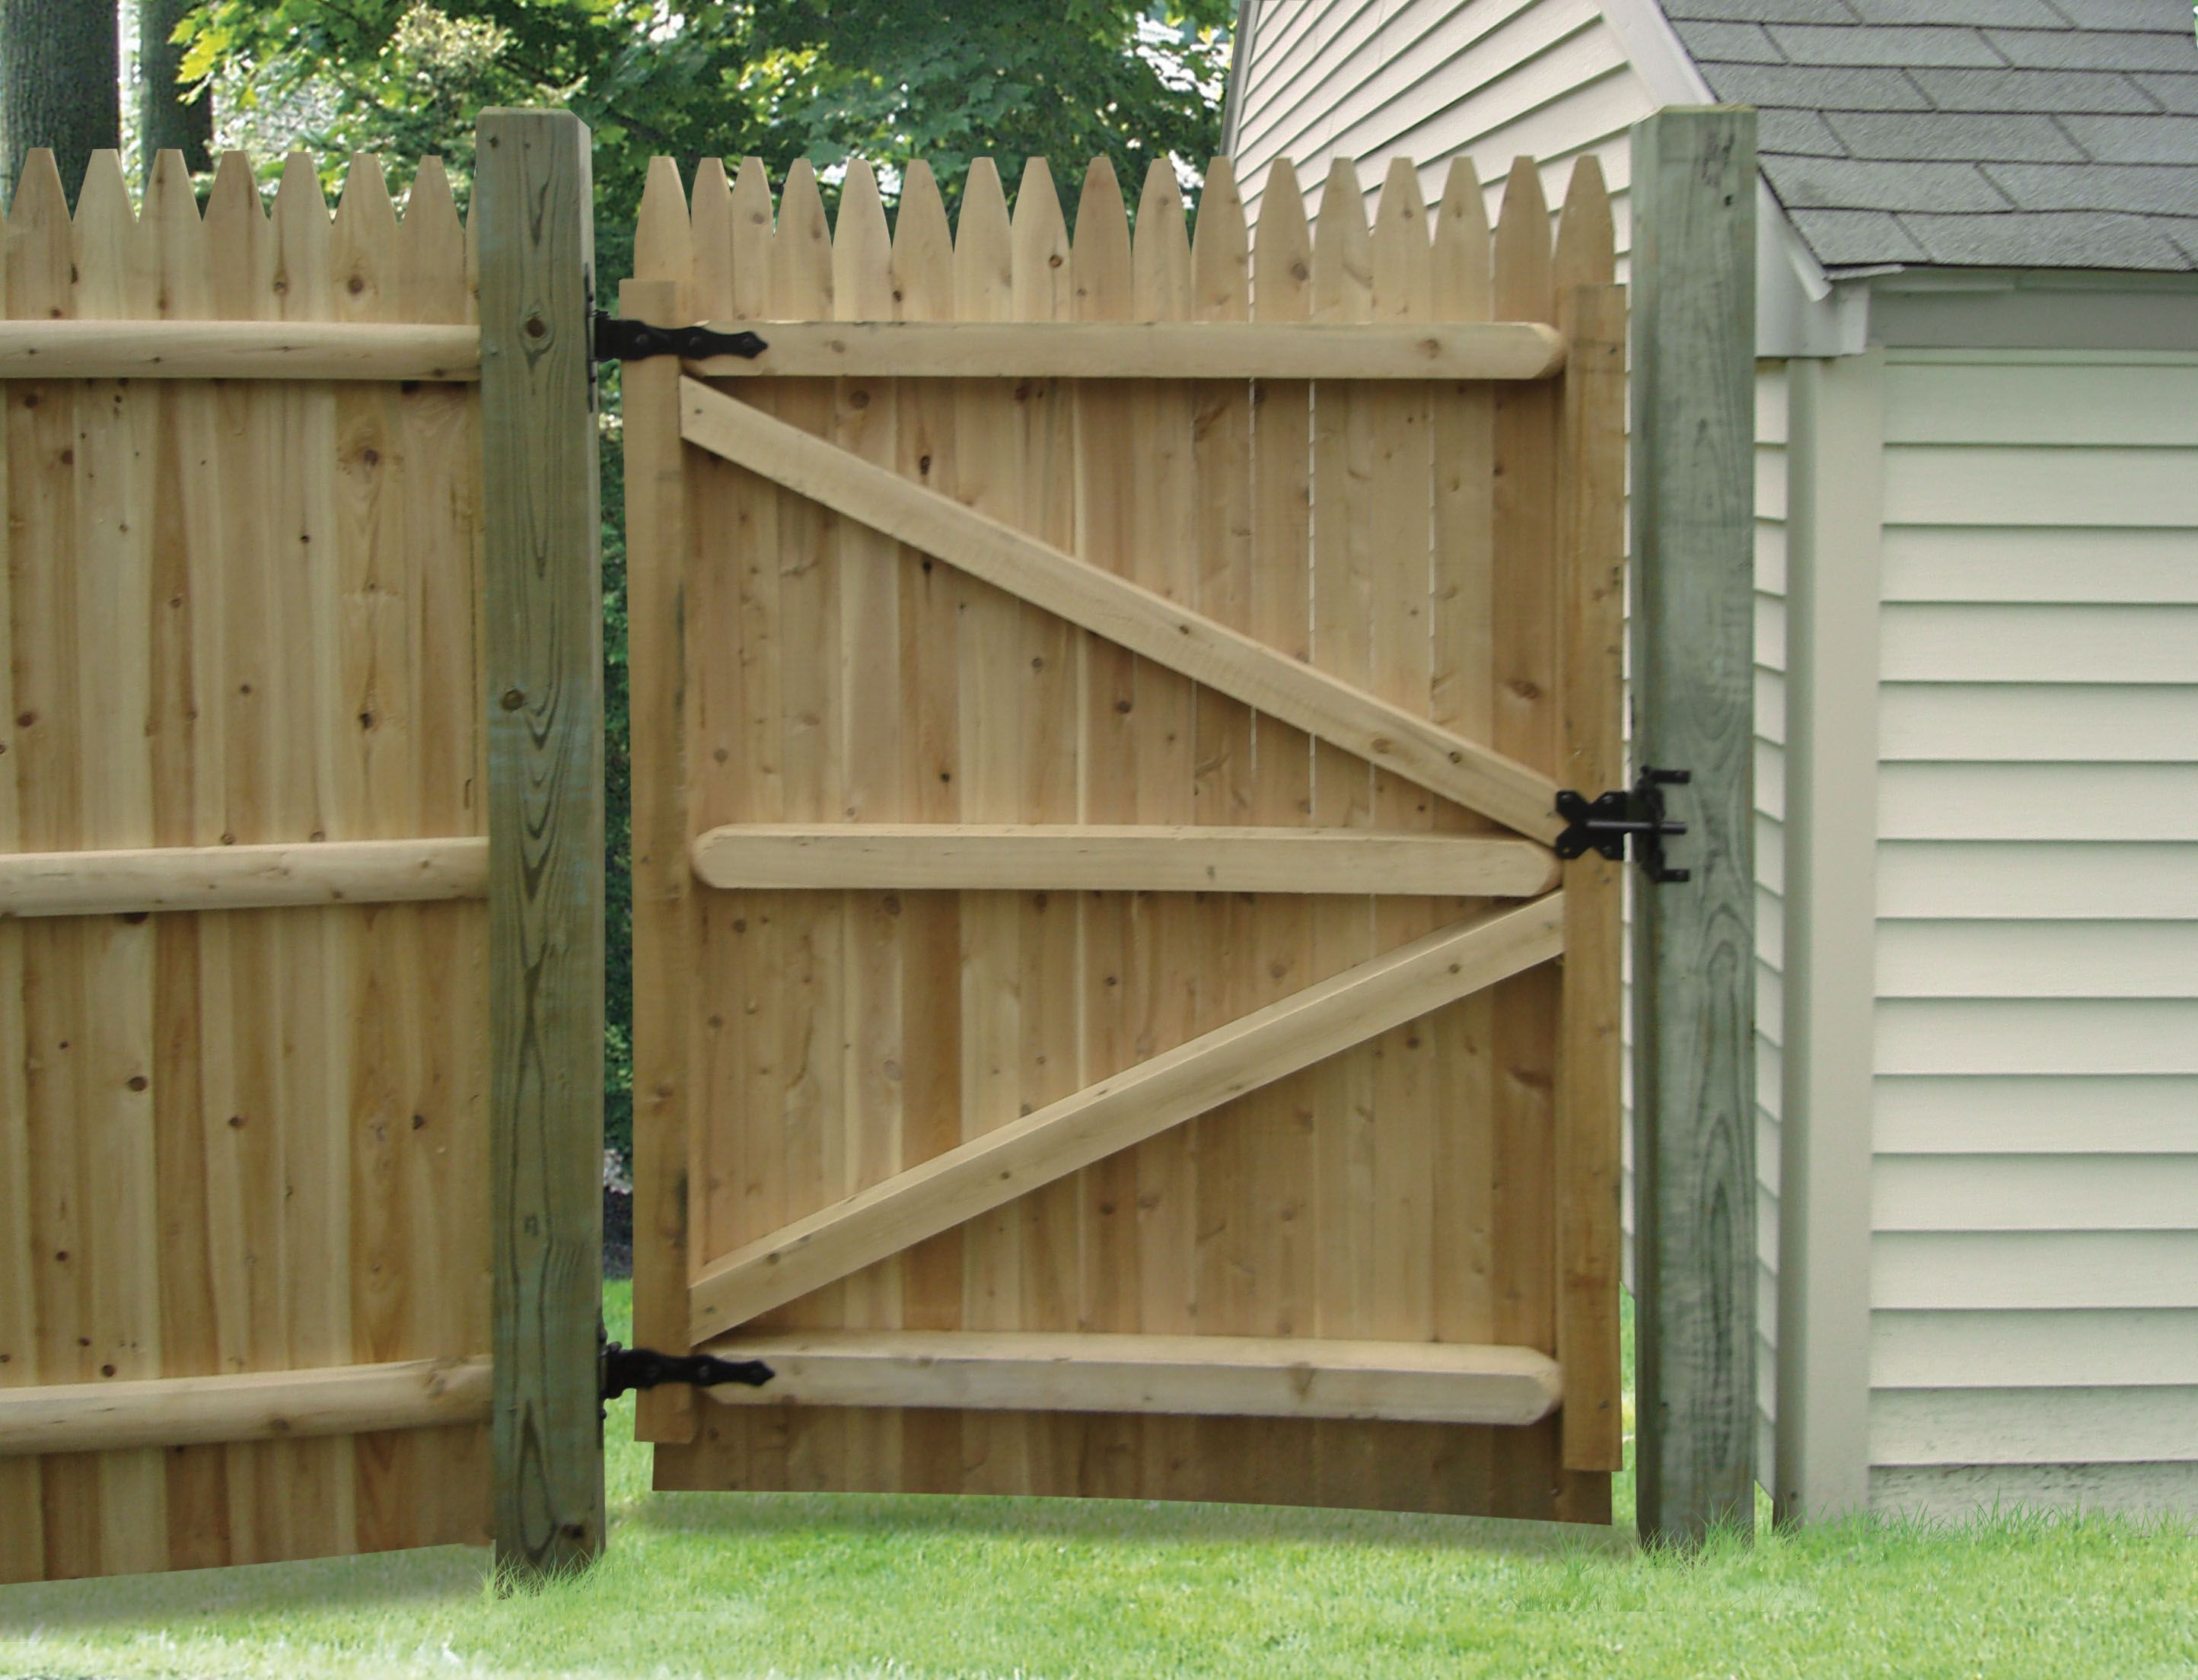 Fence Gate Design Ideas garden decor creative timber wooden driveway gate for your outdoor home decorating design ideas Wooden Fence Gates Designs Wood Fence Doors Interior Doors